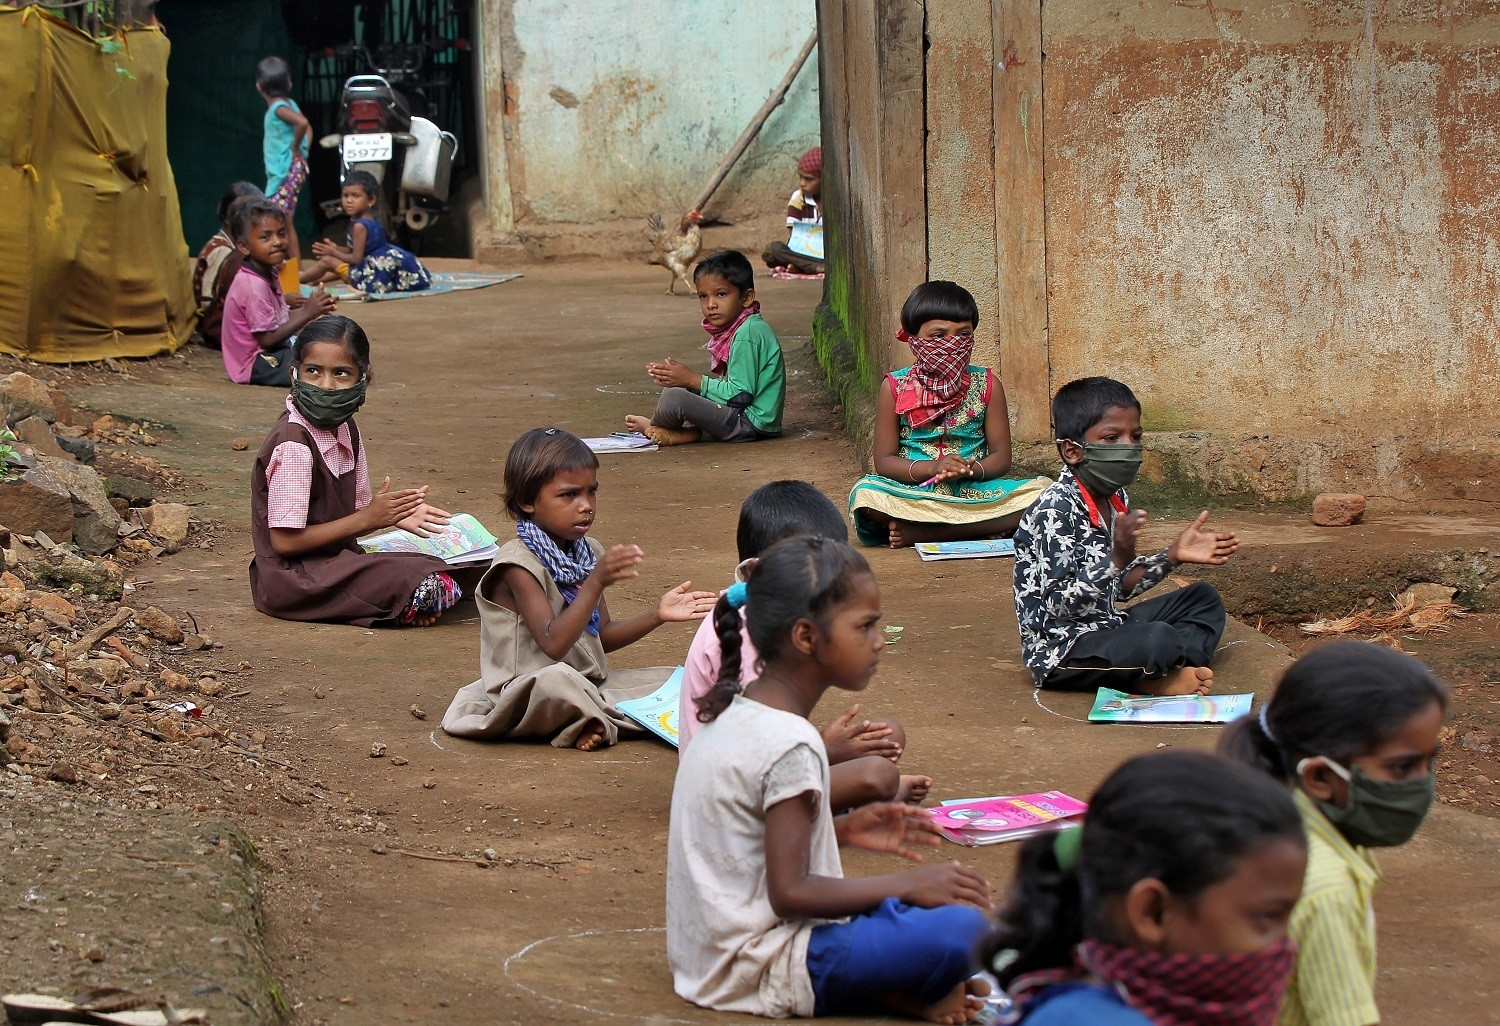 Children, who have missed their online classes due to a lack of internet facilities, sit on the ground in circles drawn with chalk to maintain a safe distance, as they listen to pre-recorded lessons over loudspeakers, after schools were closed following the coronavirus disease (COVID-19) outbreak, in Dandwal village in the western state of Maharashtra, India, July 23, 2020. Picture taken July 23, 2020. REUTERS/Prashant Waydande - RC2P6I92PEZD